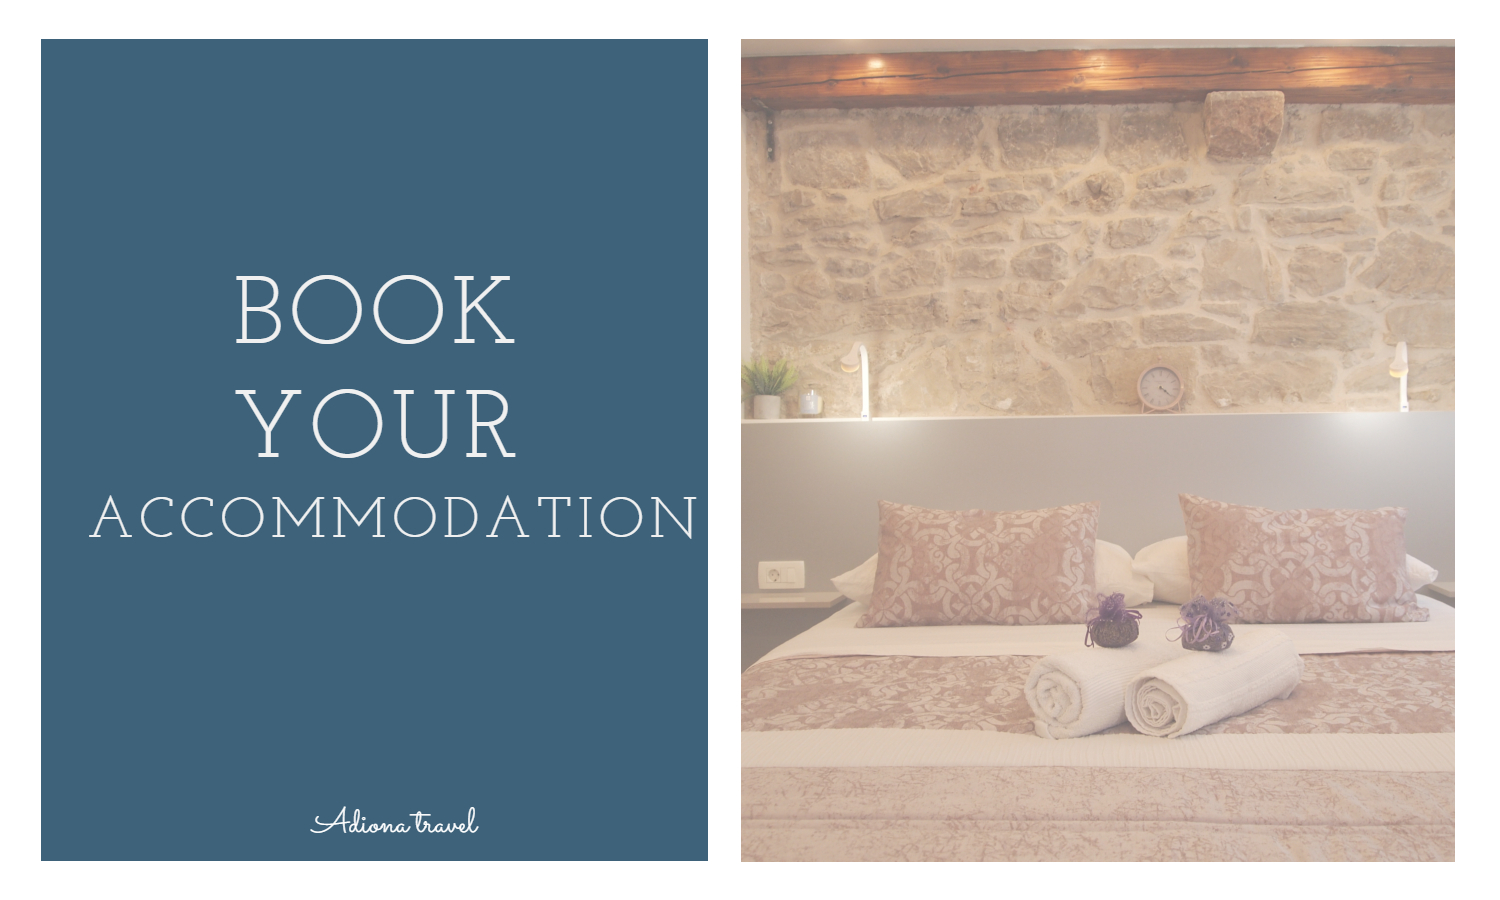 Book Your Accommodation